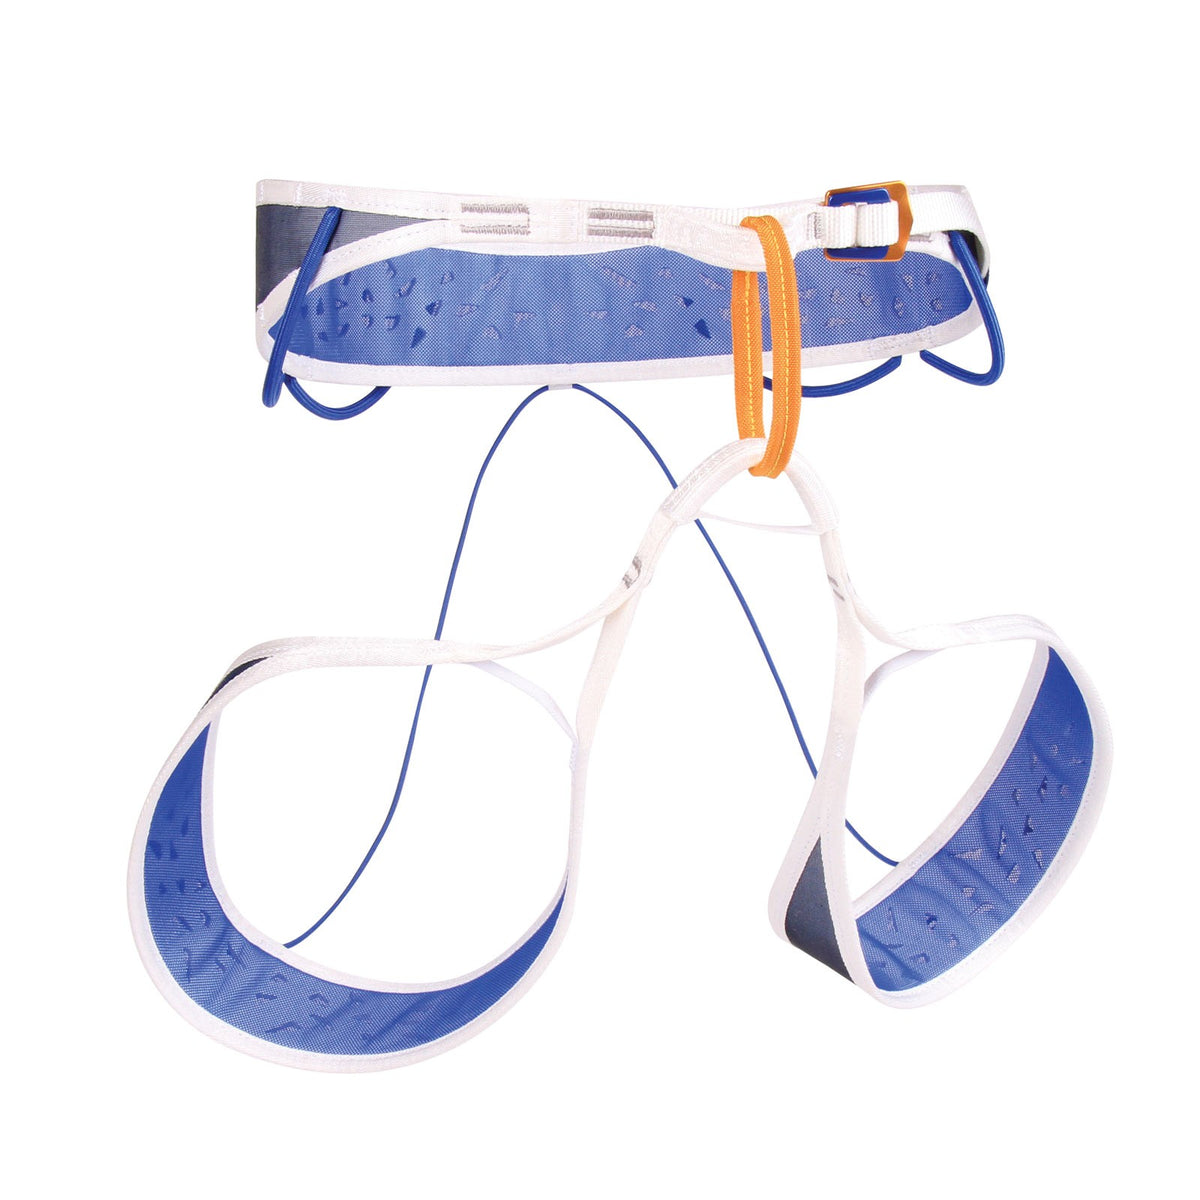 Blue Ice Addax Harness, front/side view in blue/white and orange colours